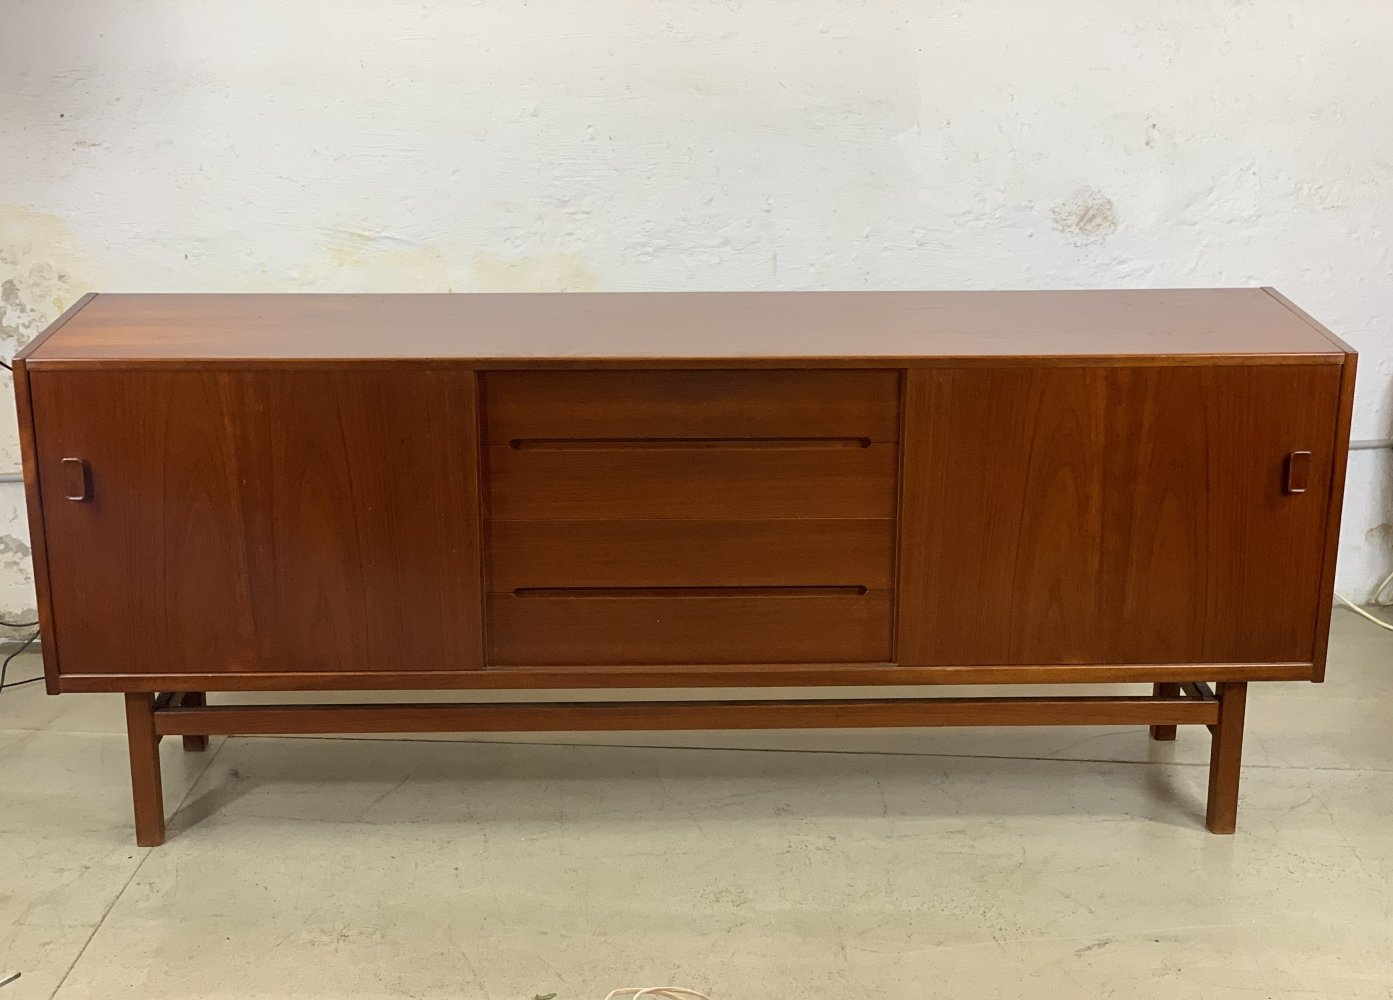 Arild sideboard by Nils Jonsson, 1960s